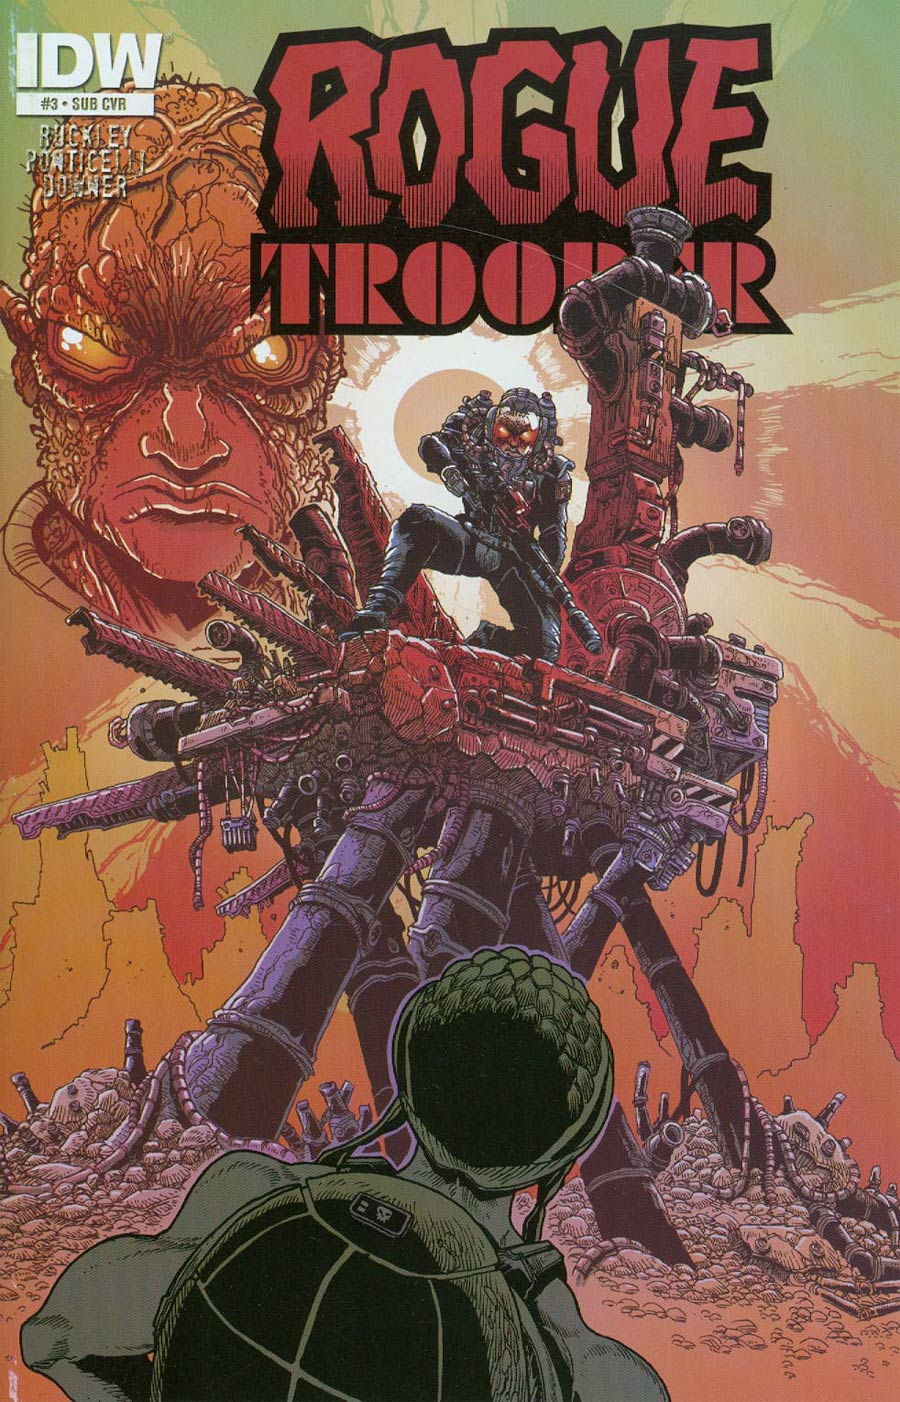 Rogue Trooper Vol 2 #3 Cover B Variant James Stokoe Subscription Cover